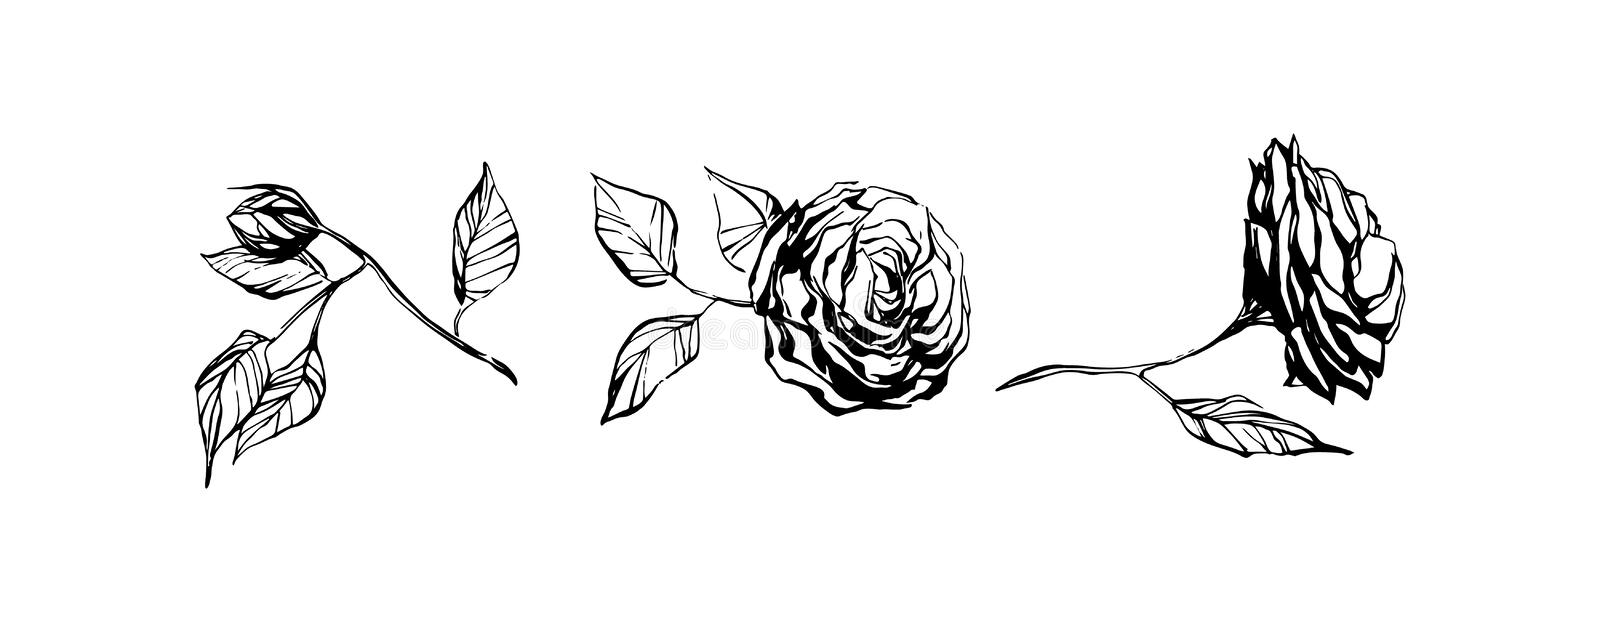 Set of hand drawn rose flowers. Plant painting by ink. Sketch botanical vector illustration. Black isolated dog-rose on white. Set of hand drawn rose flowers stock illustration